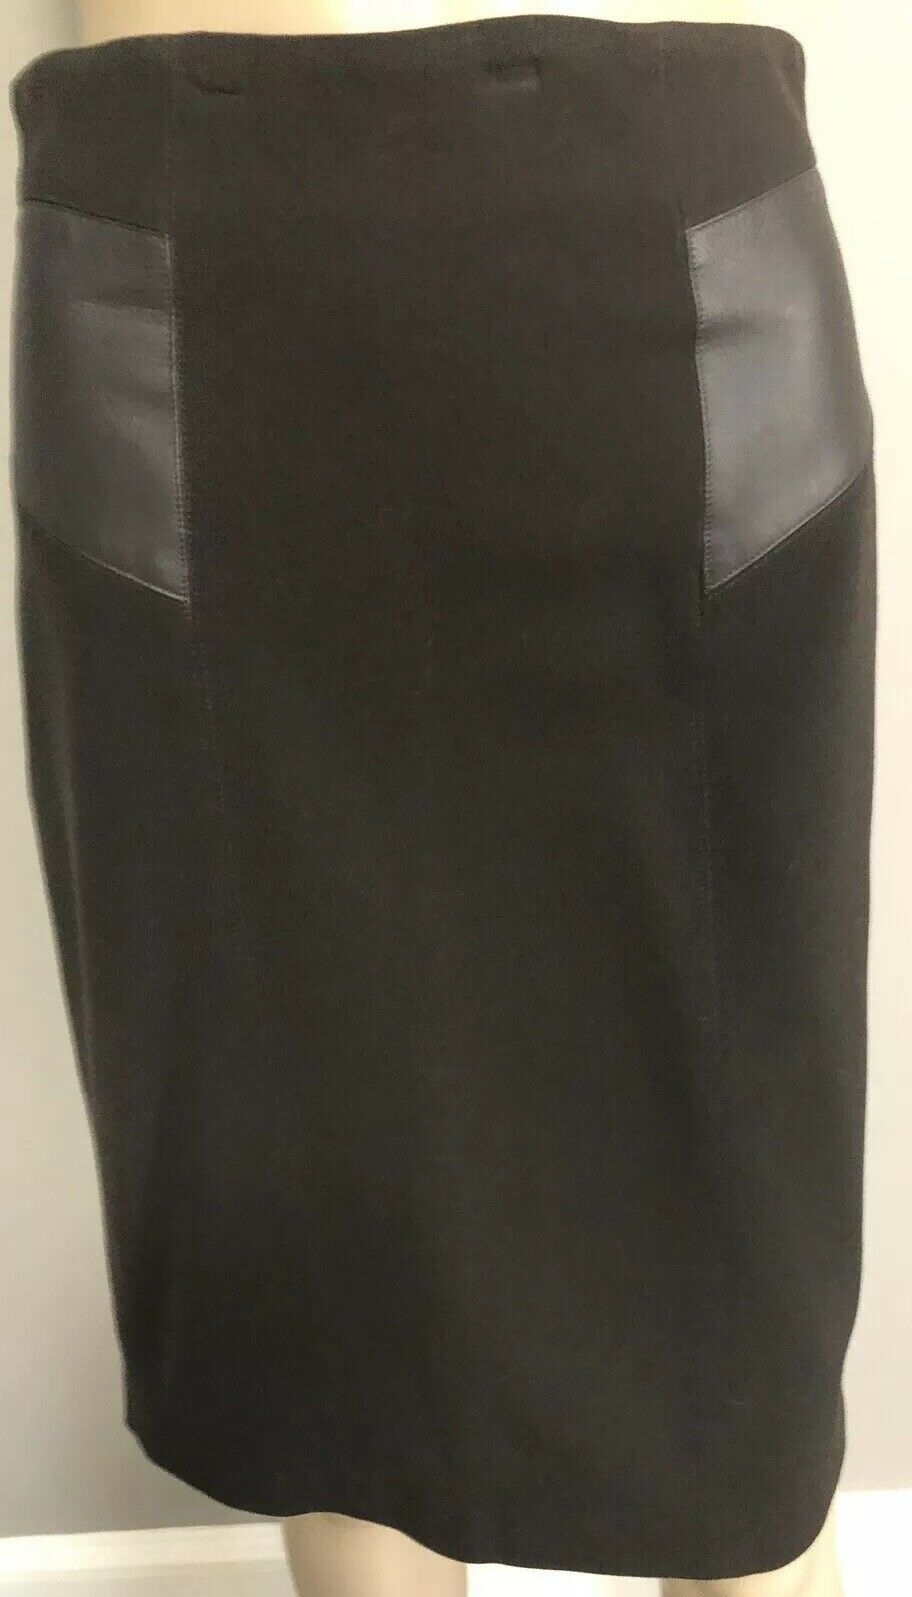 Brown Skirt  with Leather panels by Max Mara sz 2 4